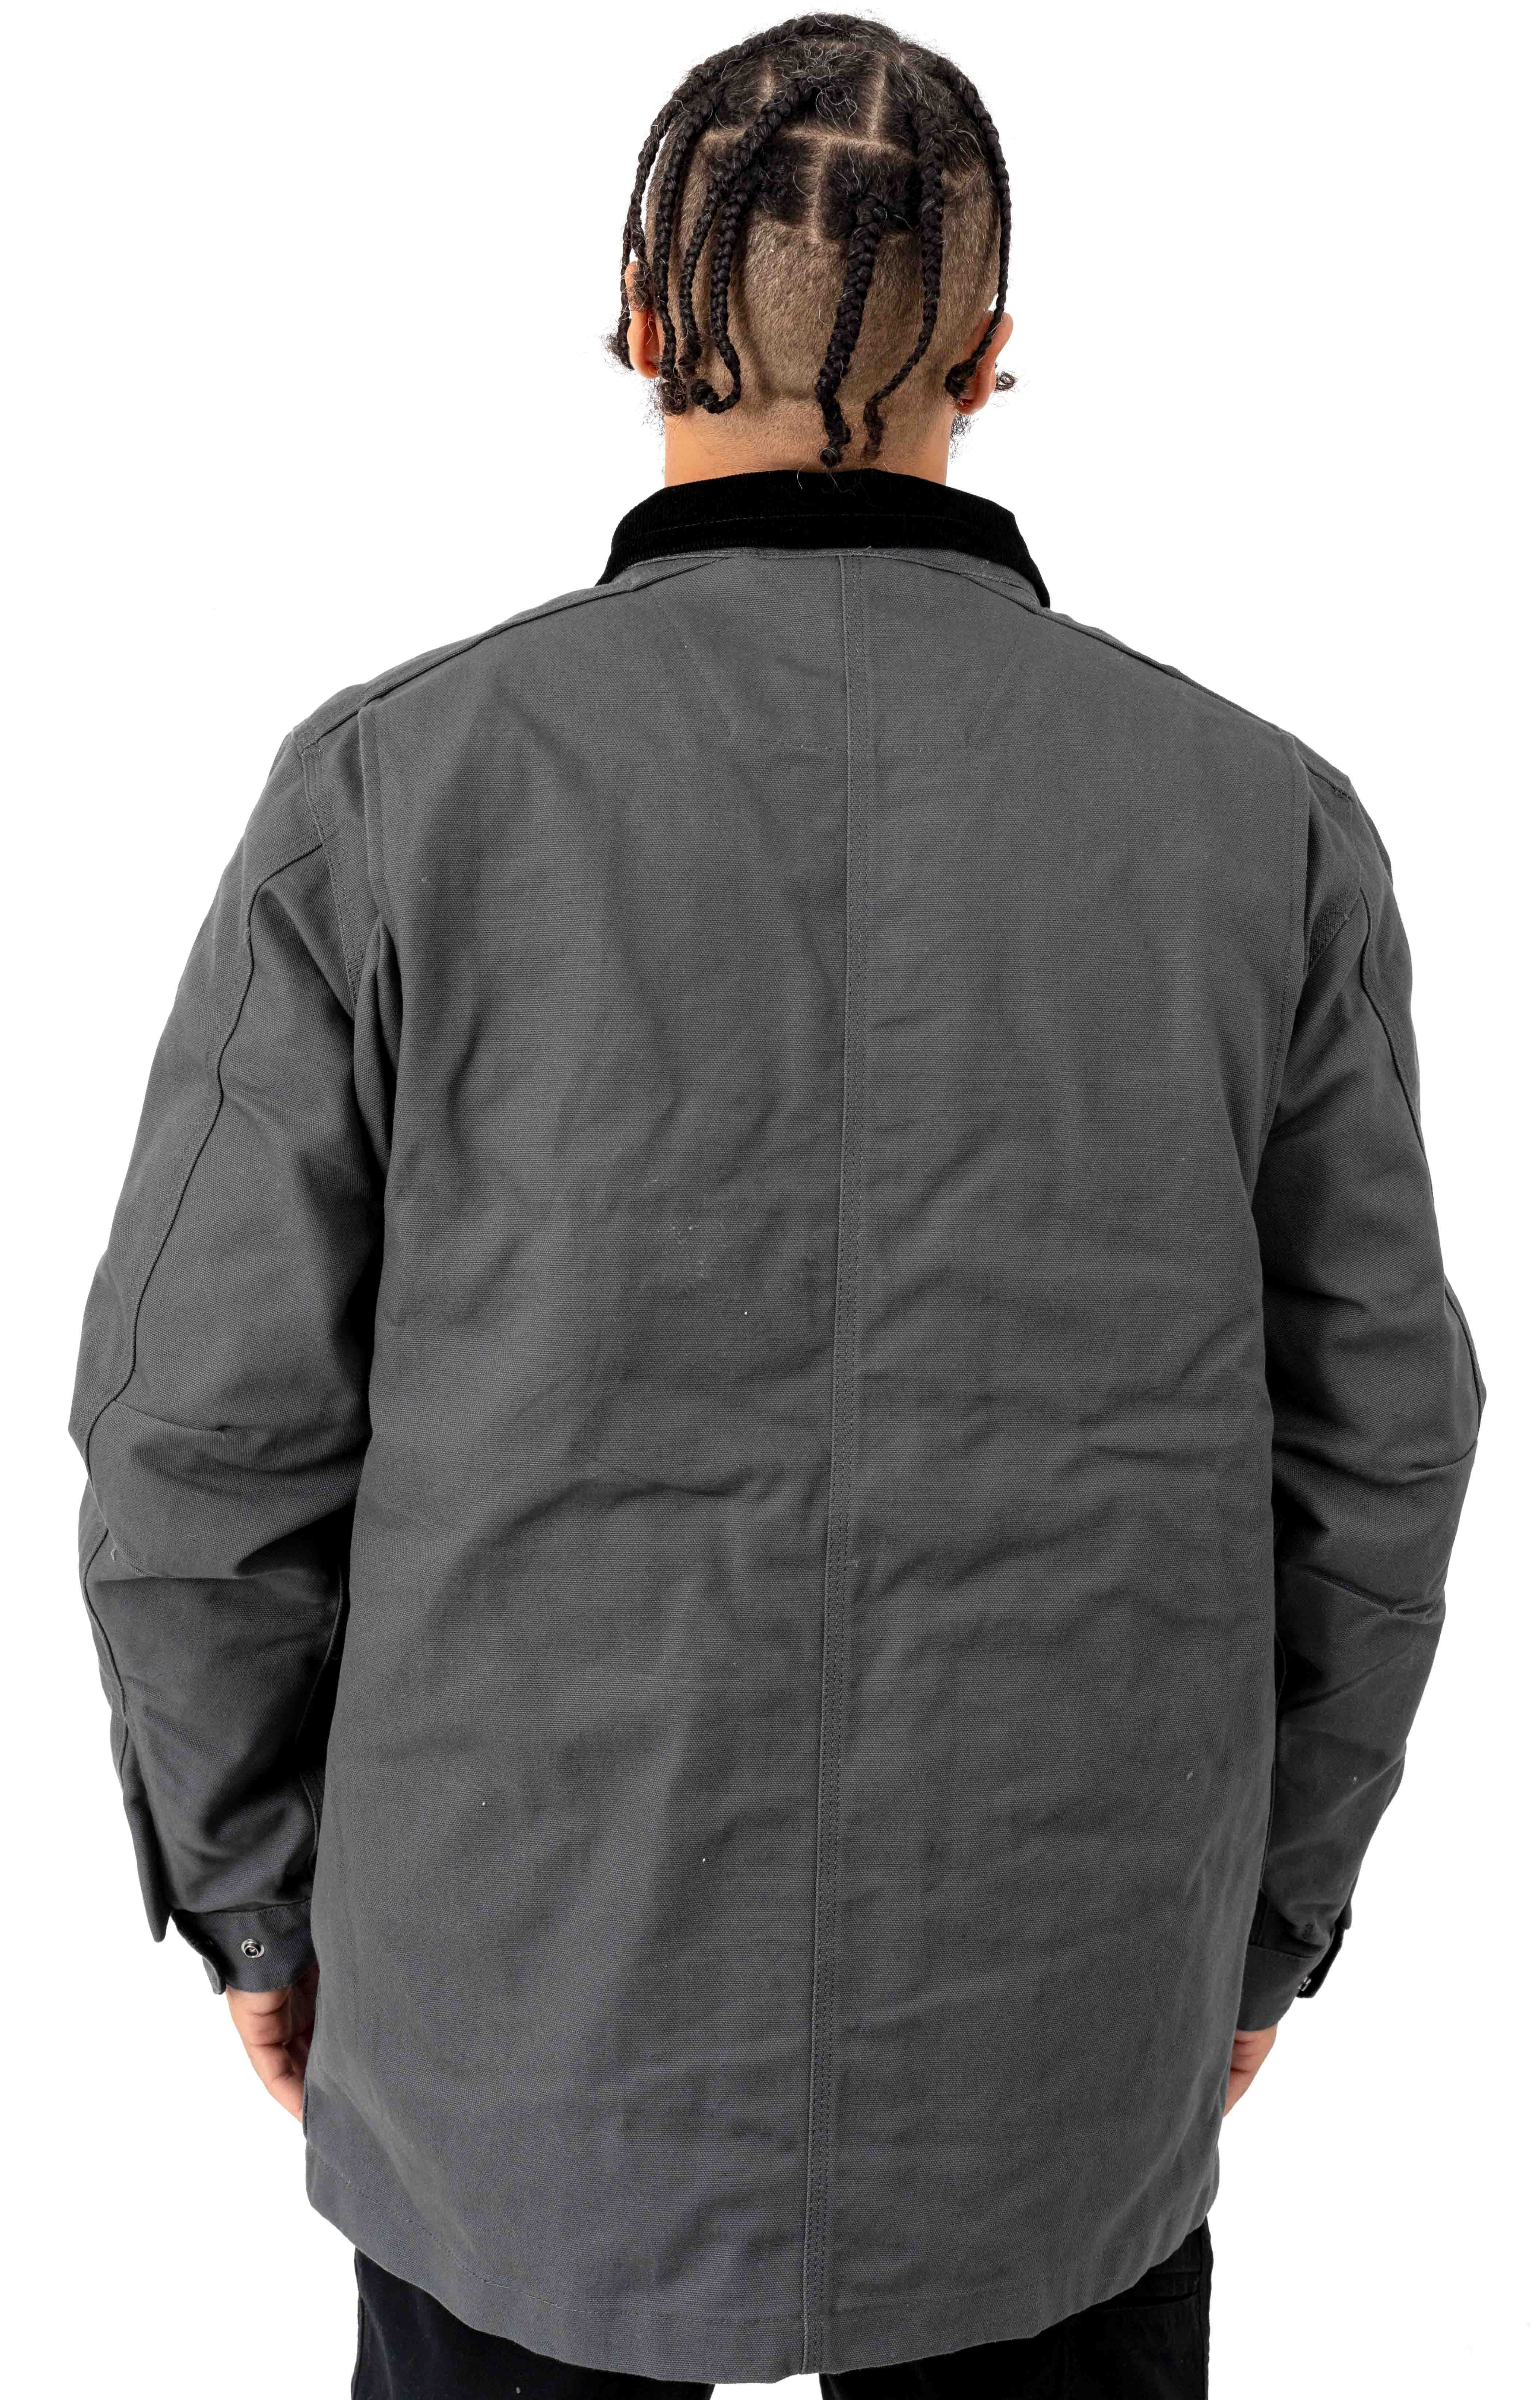 (103289) Filed Coat - Shadow/Black Lining  3